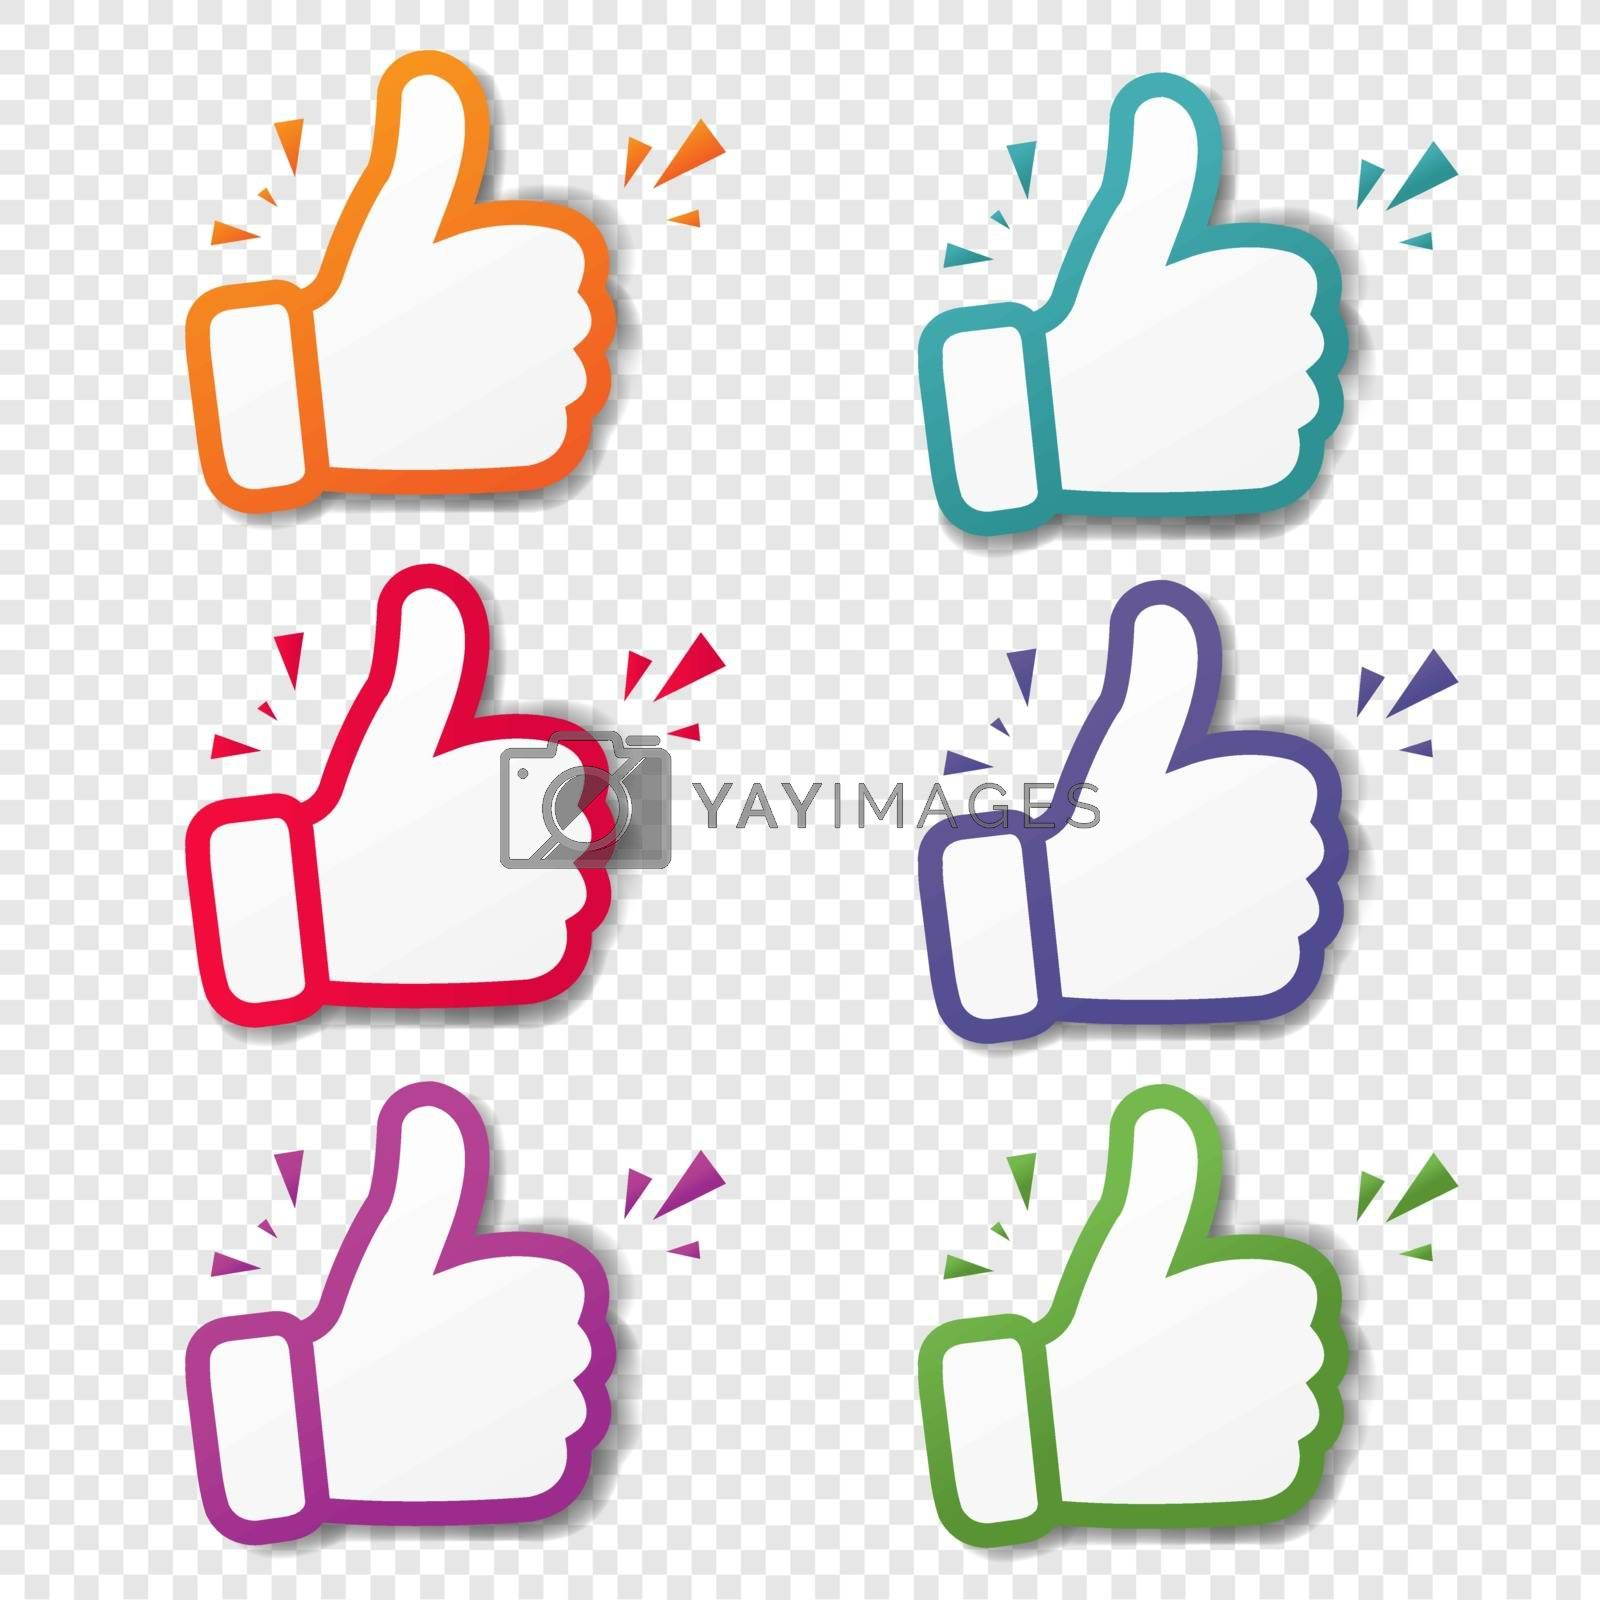 Hand Banner Recommended With Thumbs Up Transparent Background With Gradient Mesh, Vector Illustration